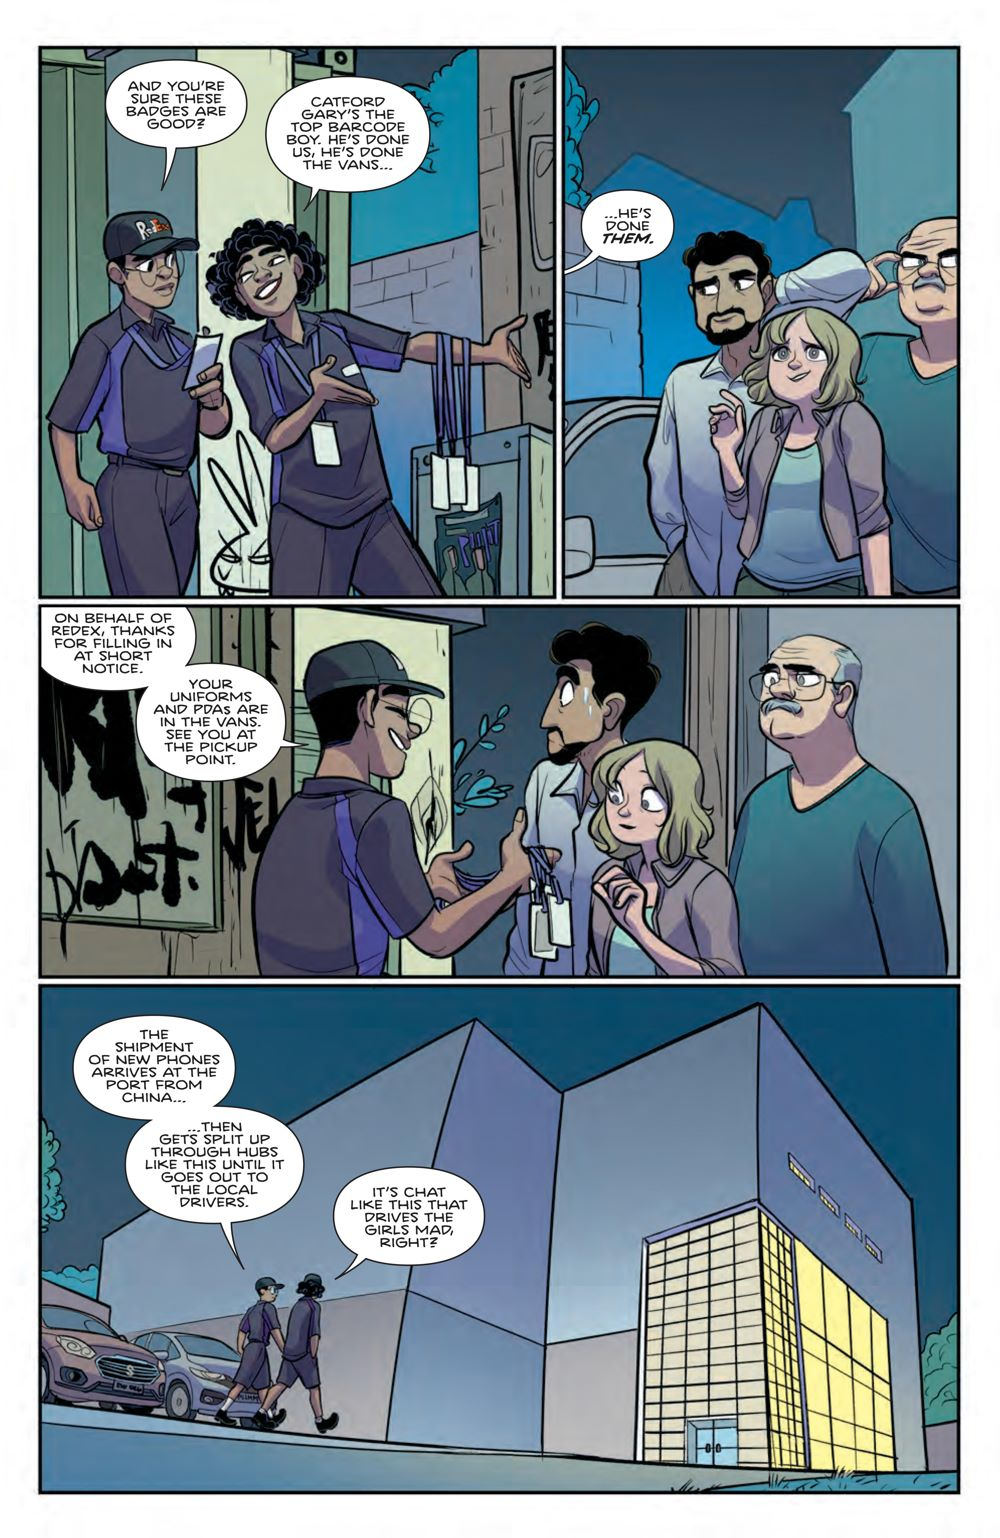 WickedThings_004_PRESS_5 ComicList Previews: WICKED THINGS #4